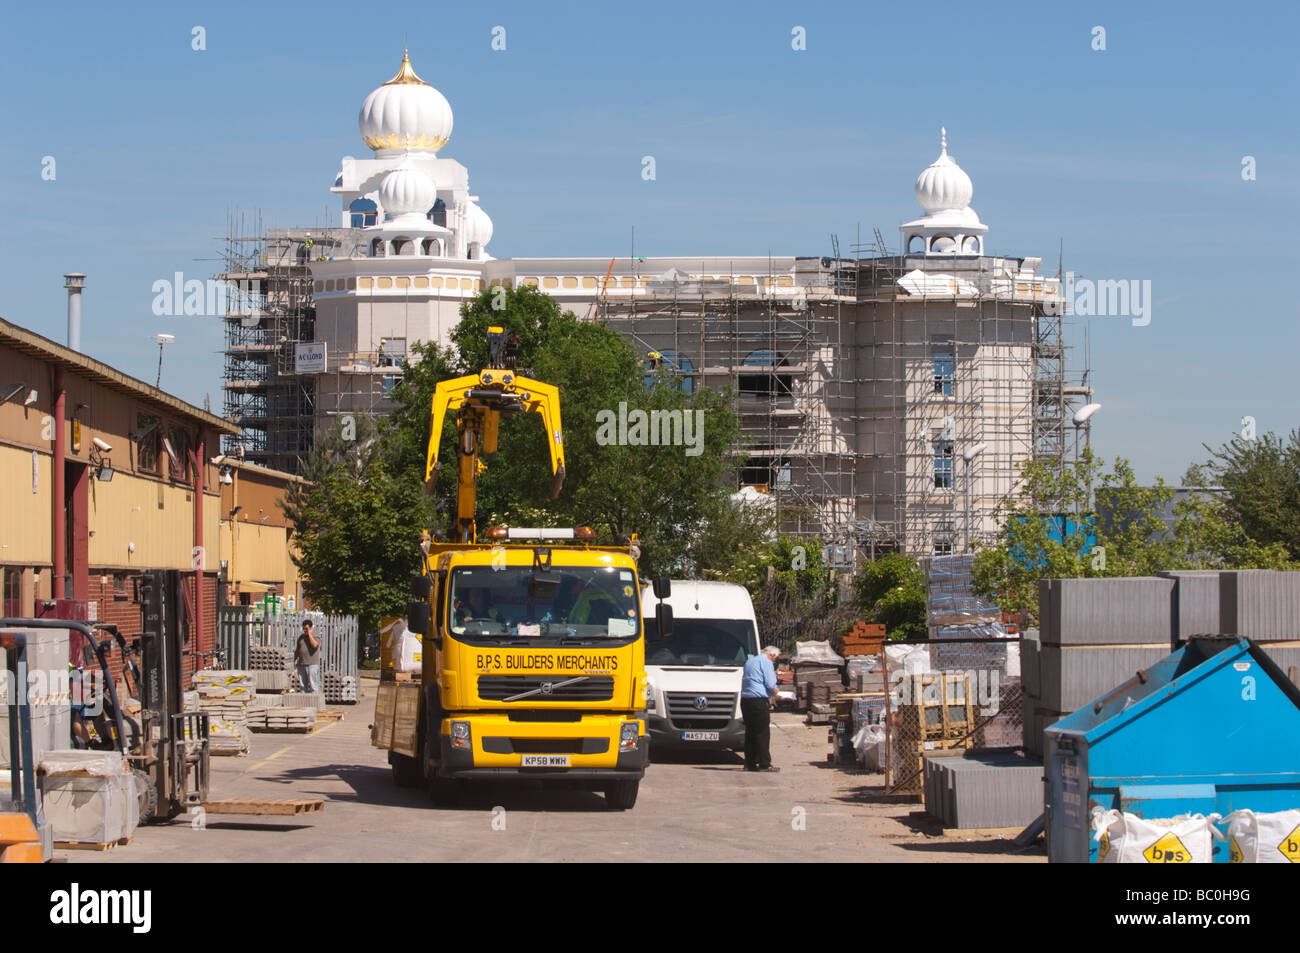 Builders merchants with Gurdwara Sikh Temple construction site behind, Leamington Spa, Warwickshire, UK. - Stock Image